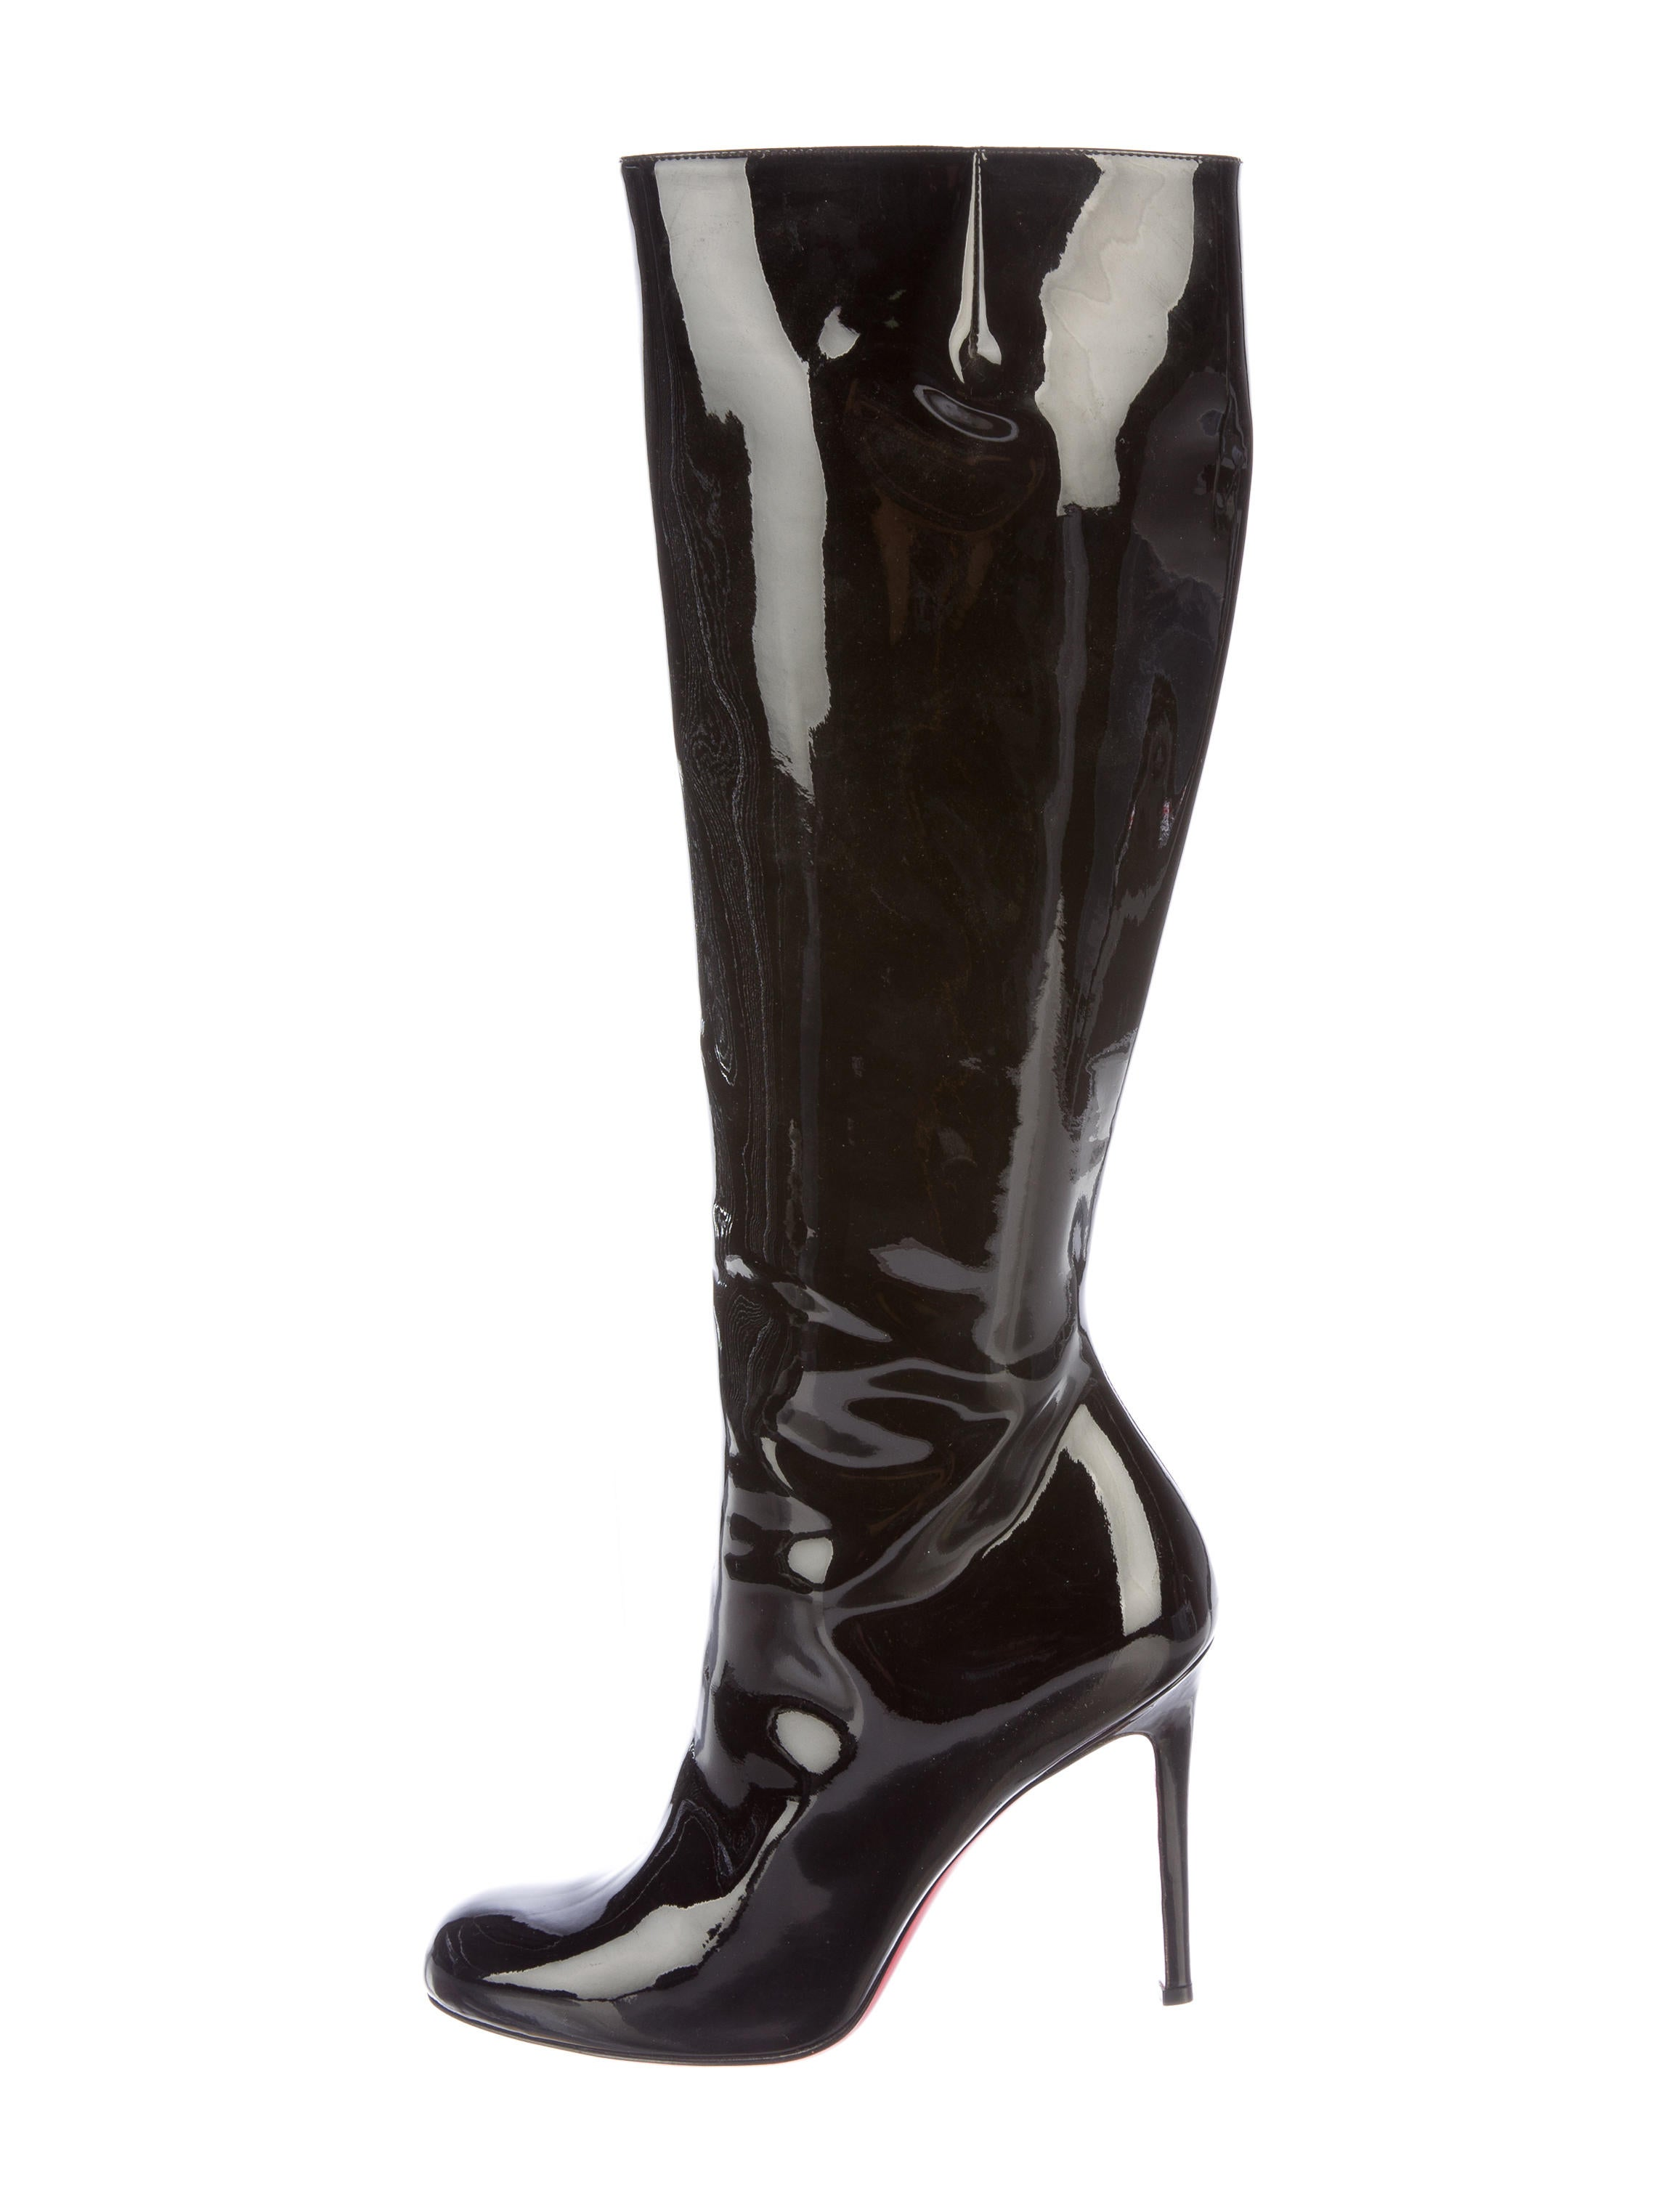 christian louboutin patent leather knee high boots shoes